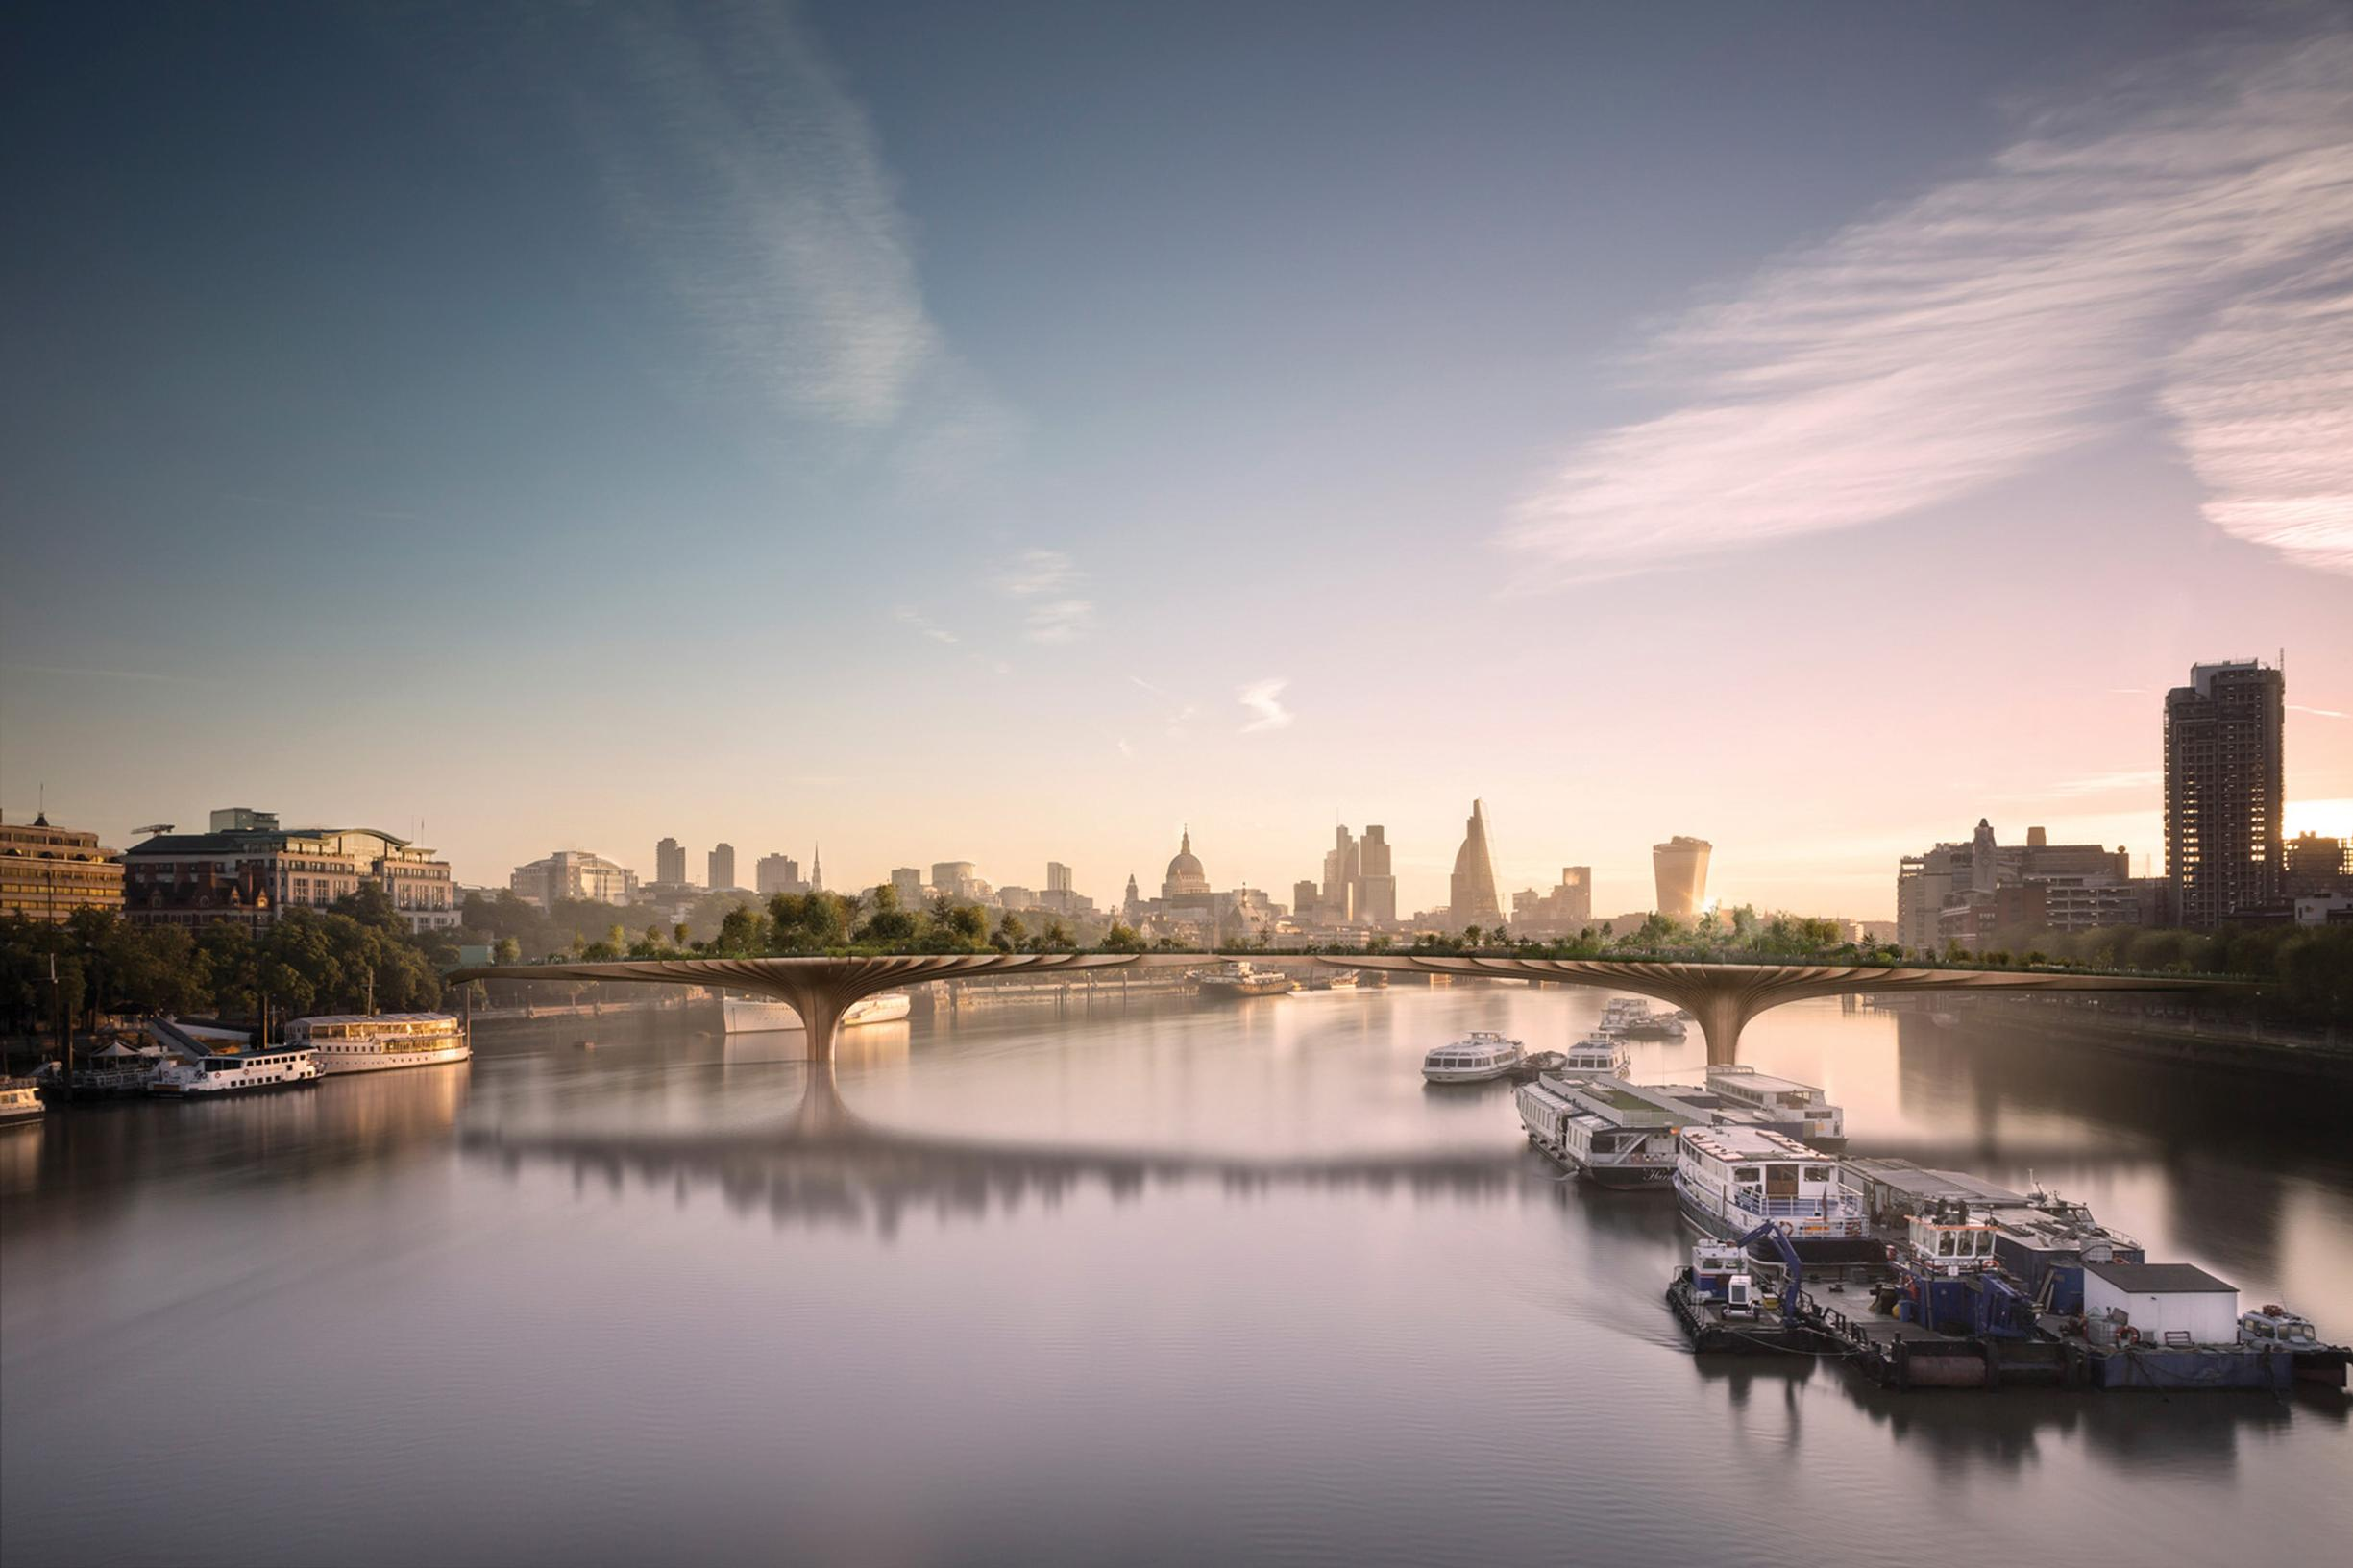 Don't pull the plug on capital's Garden Bridge, pleads charity